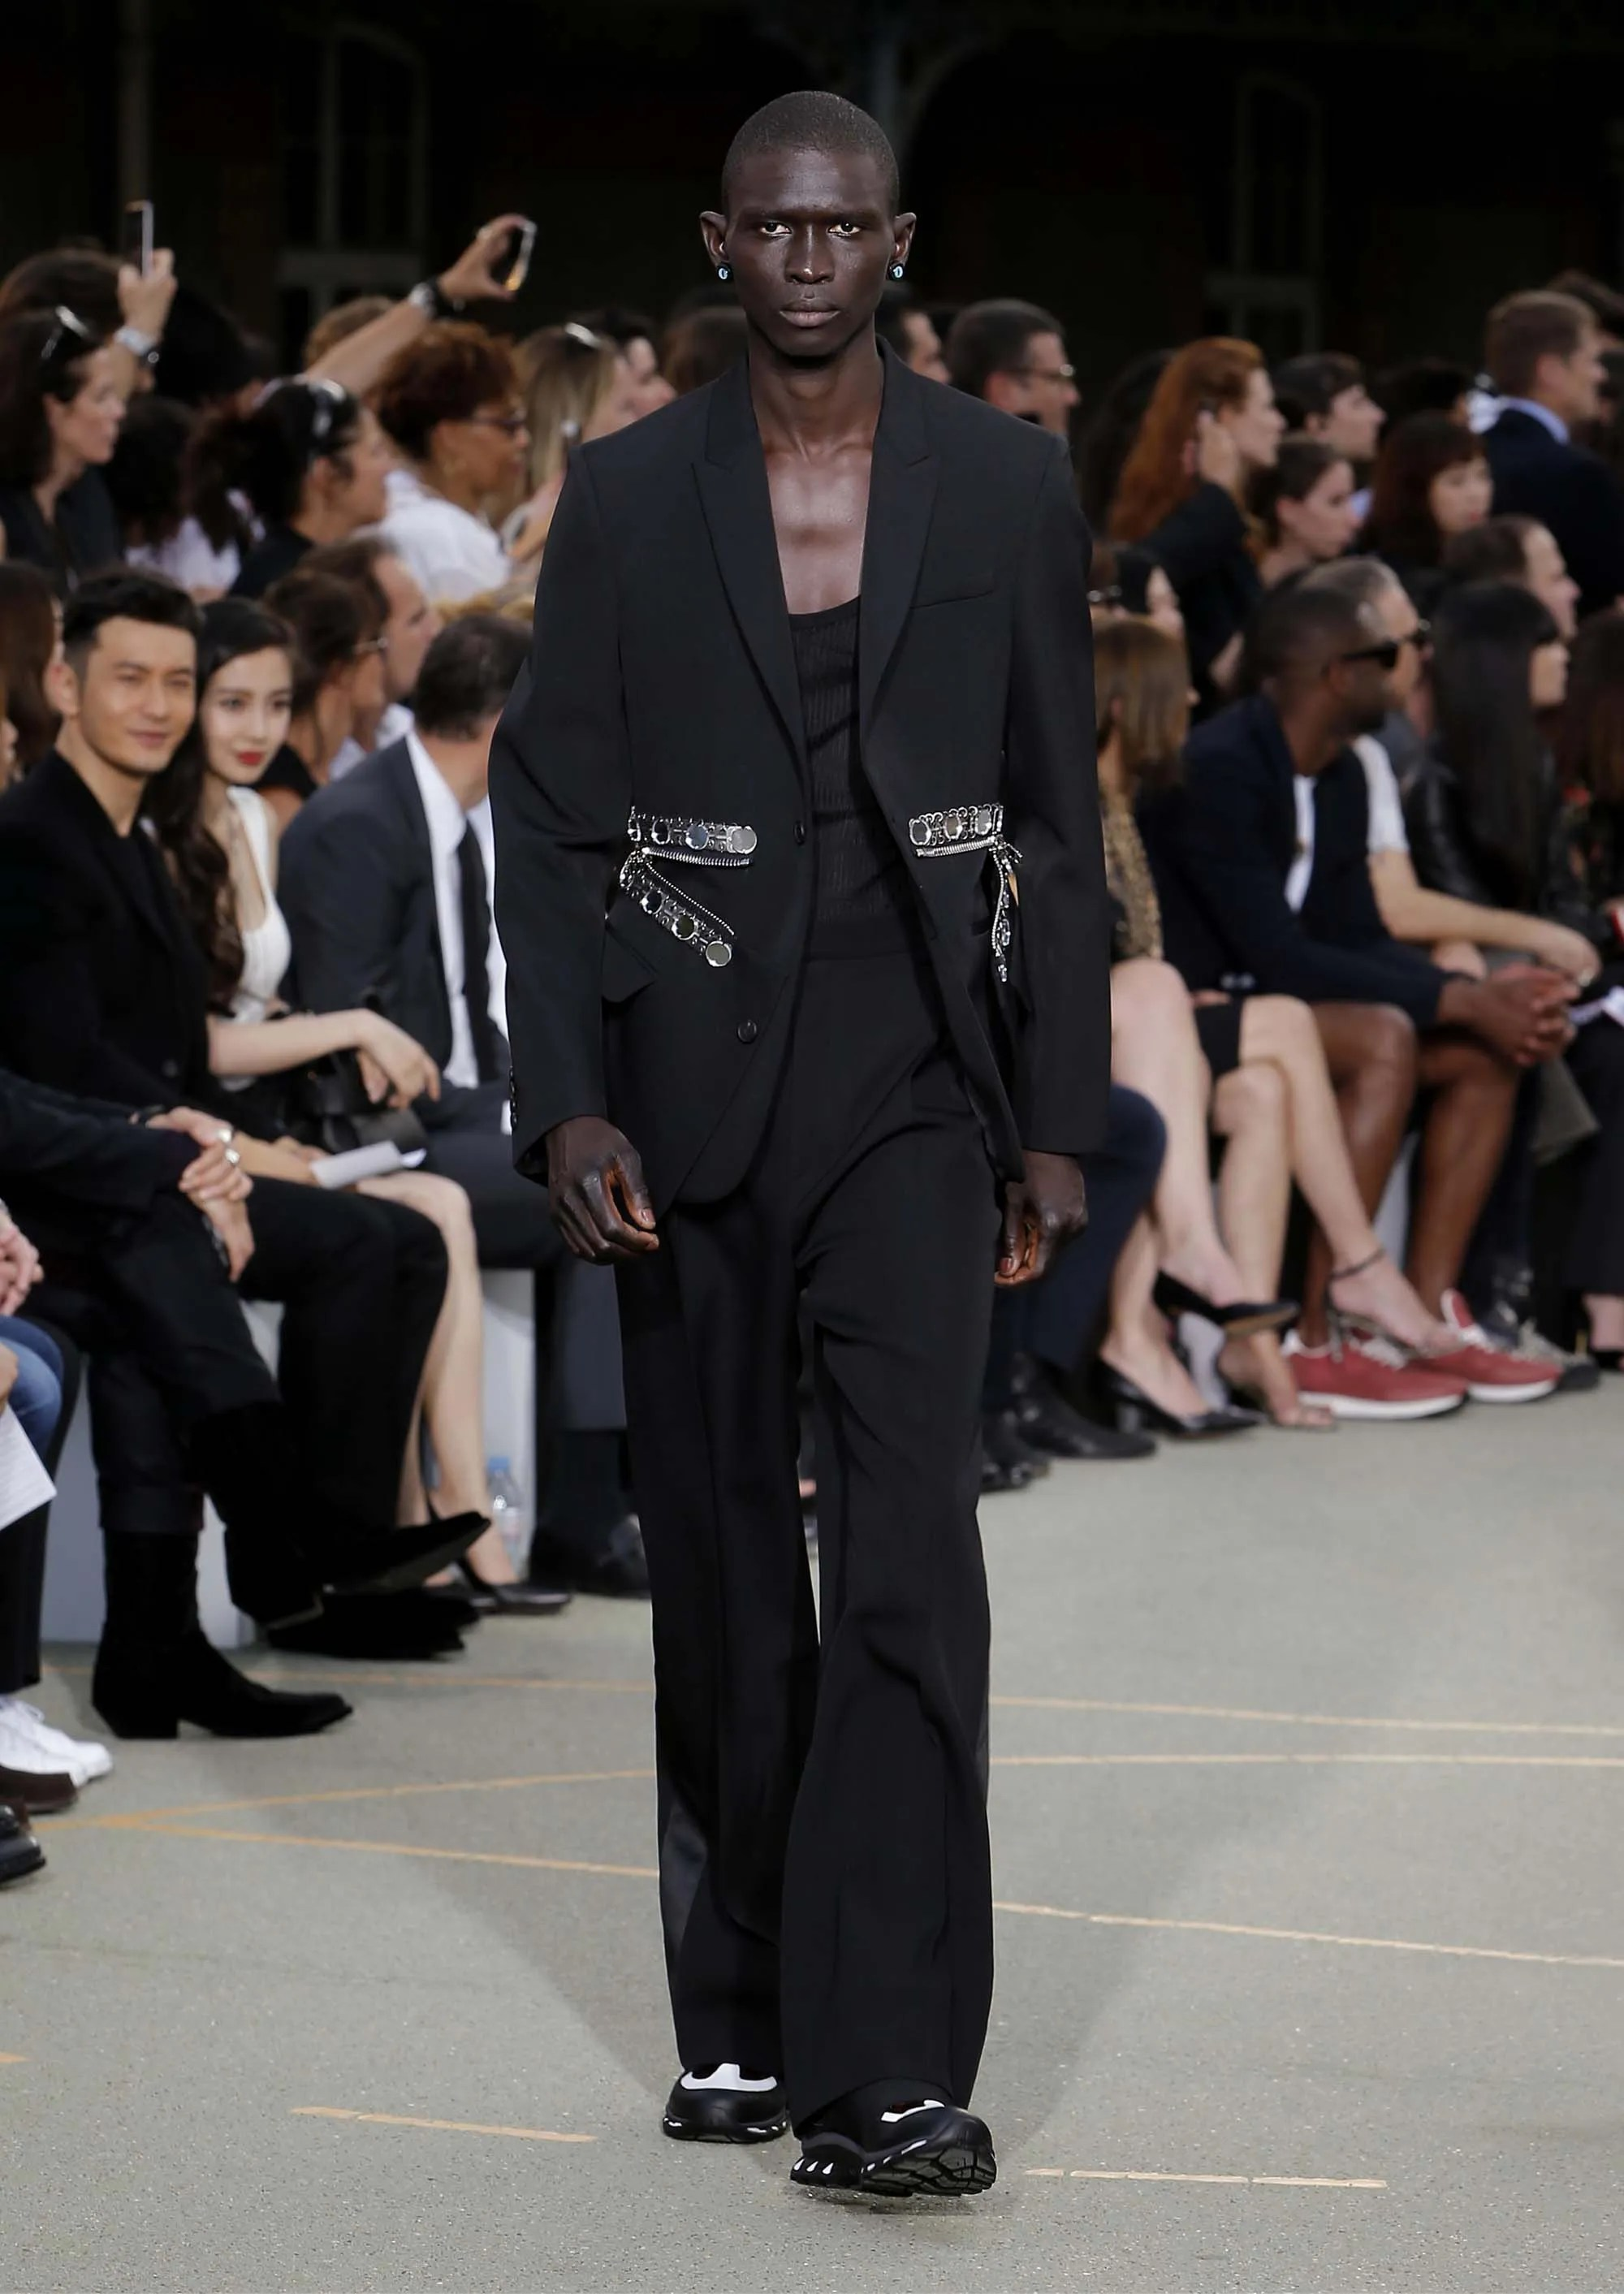 Givenchy Spring/Summer 2017 Menswear